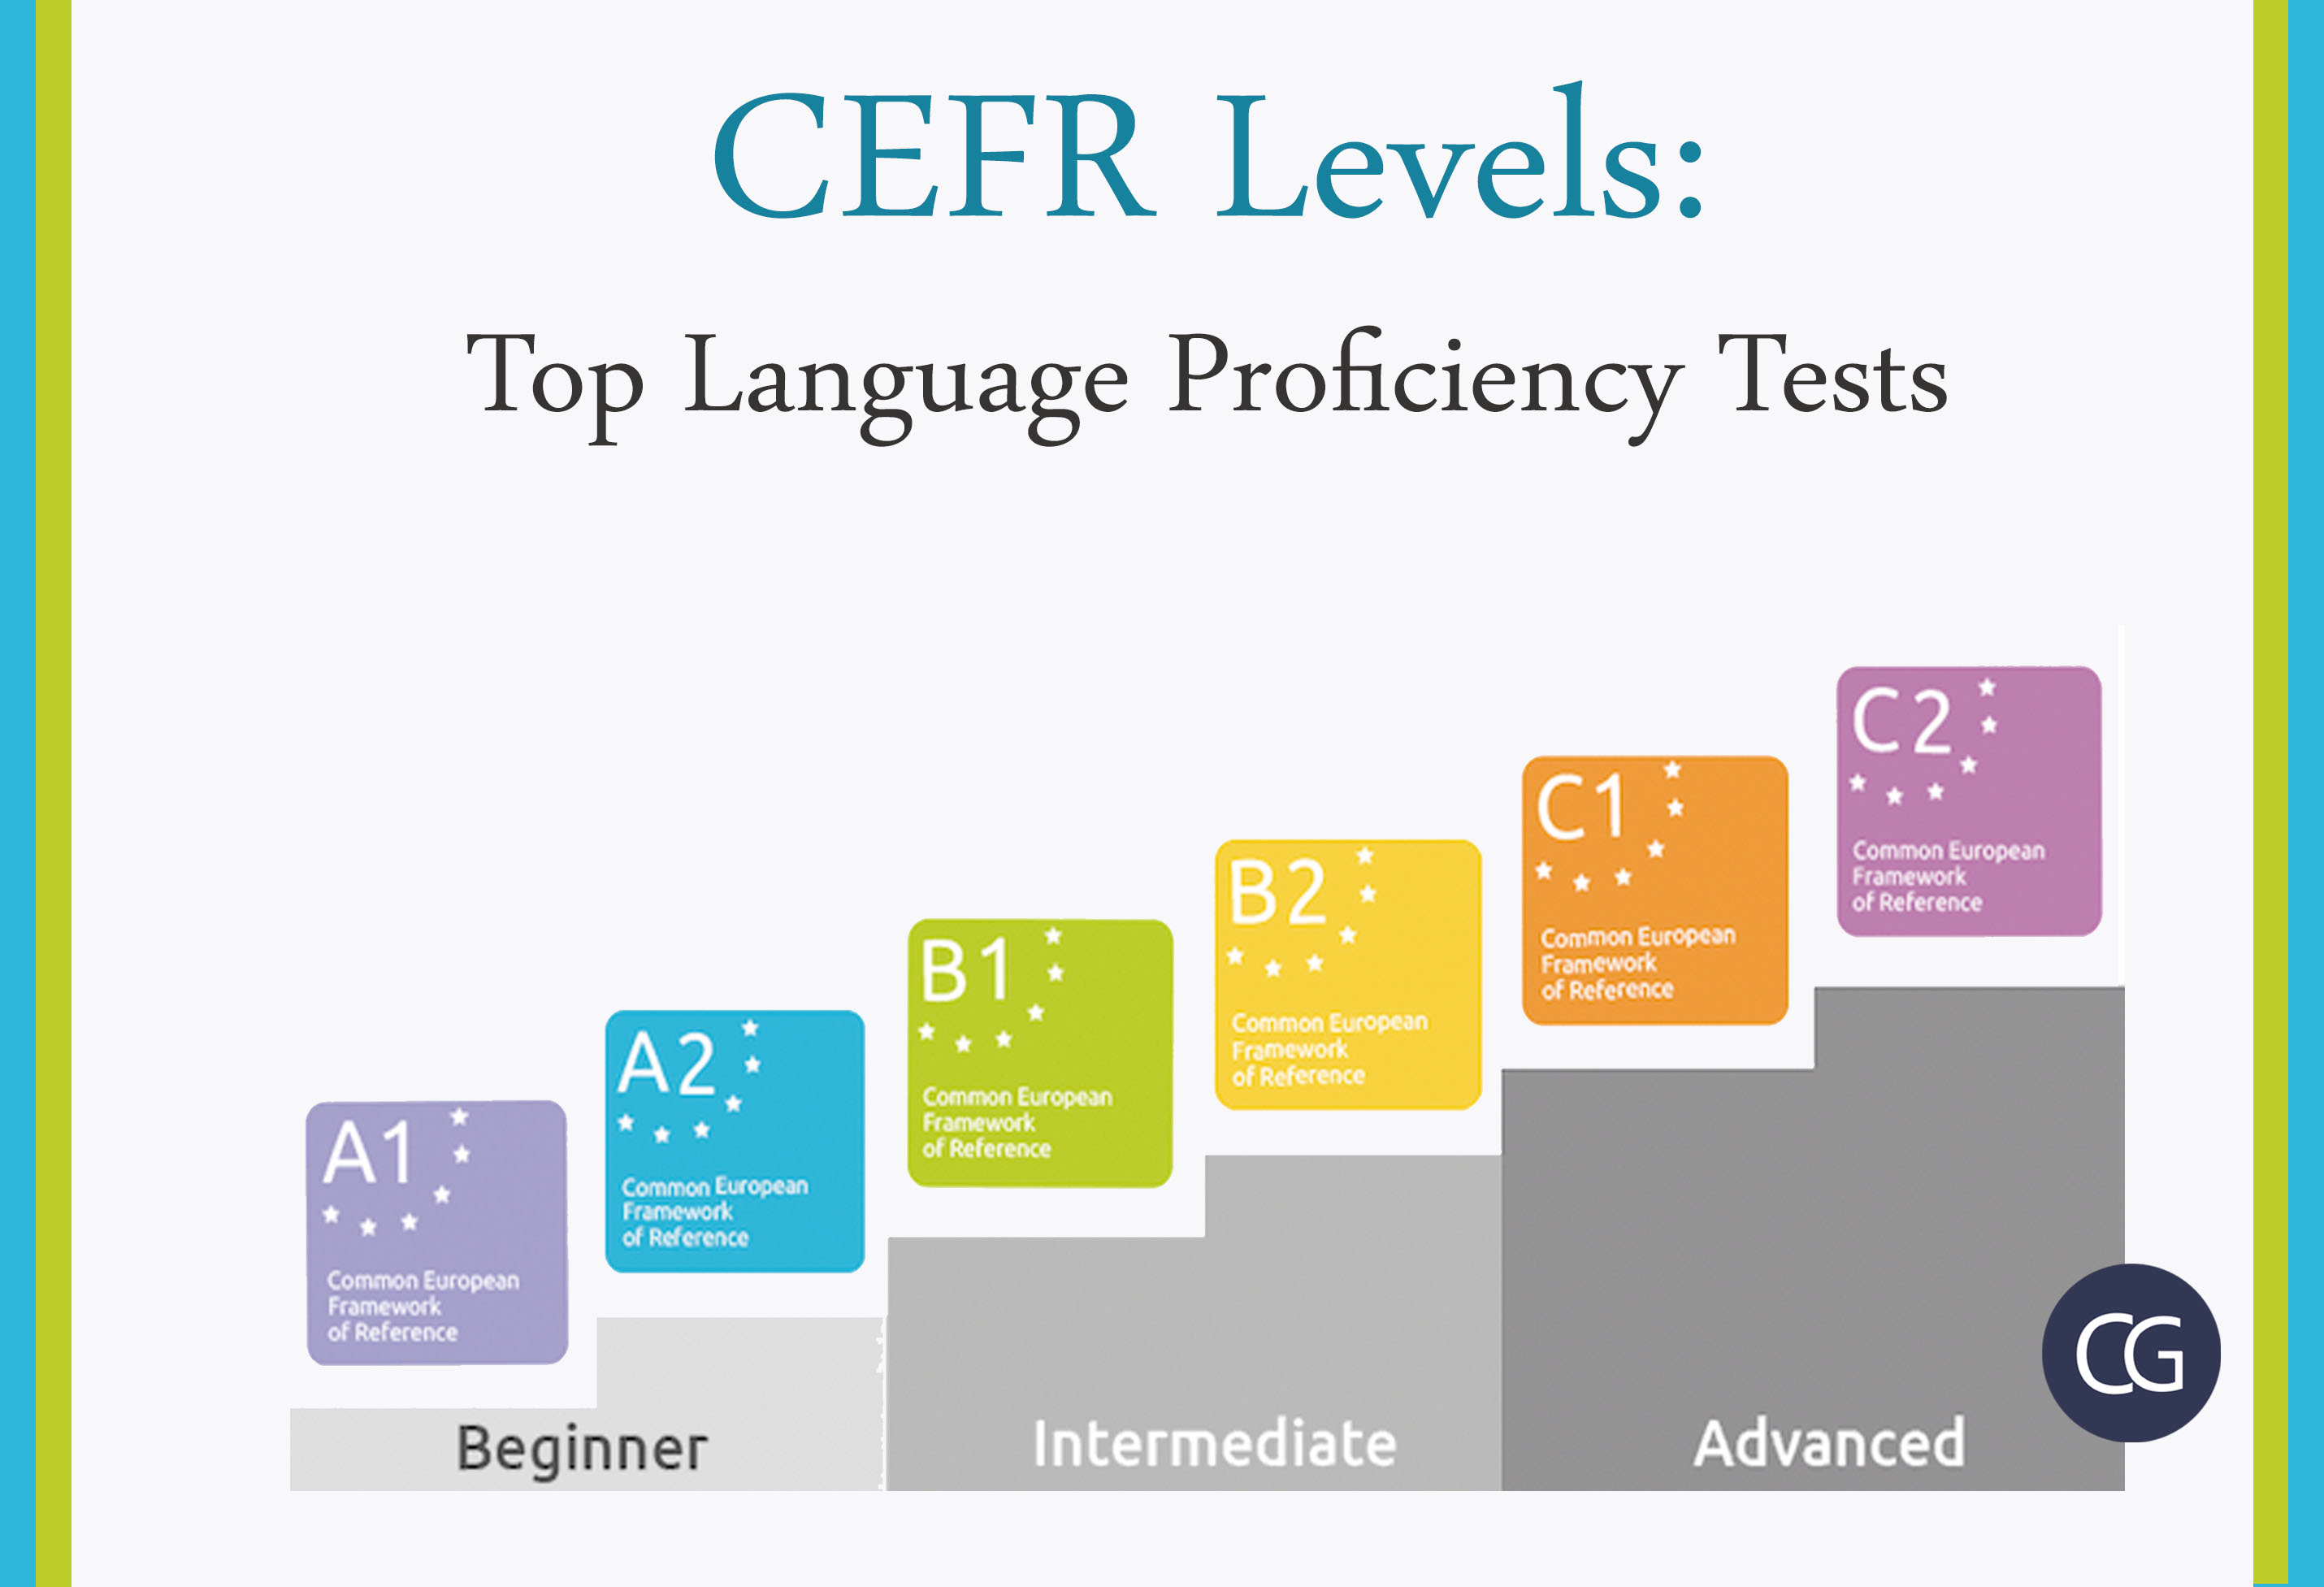 levels of the top language proficiency tests